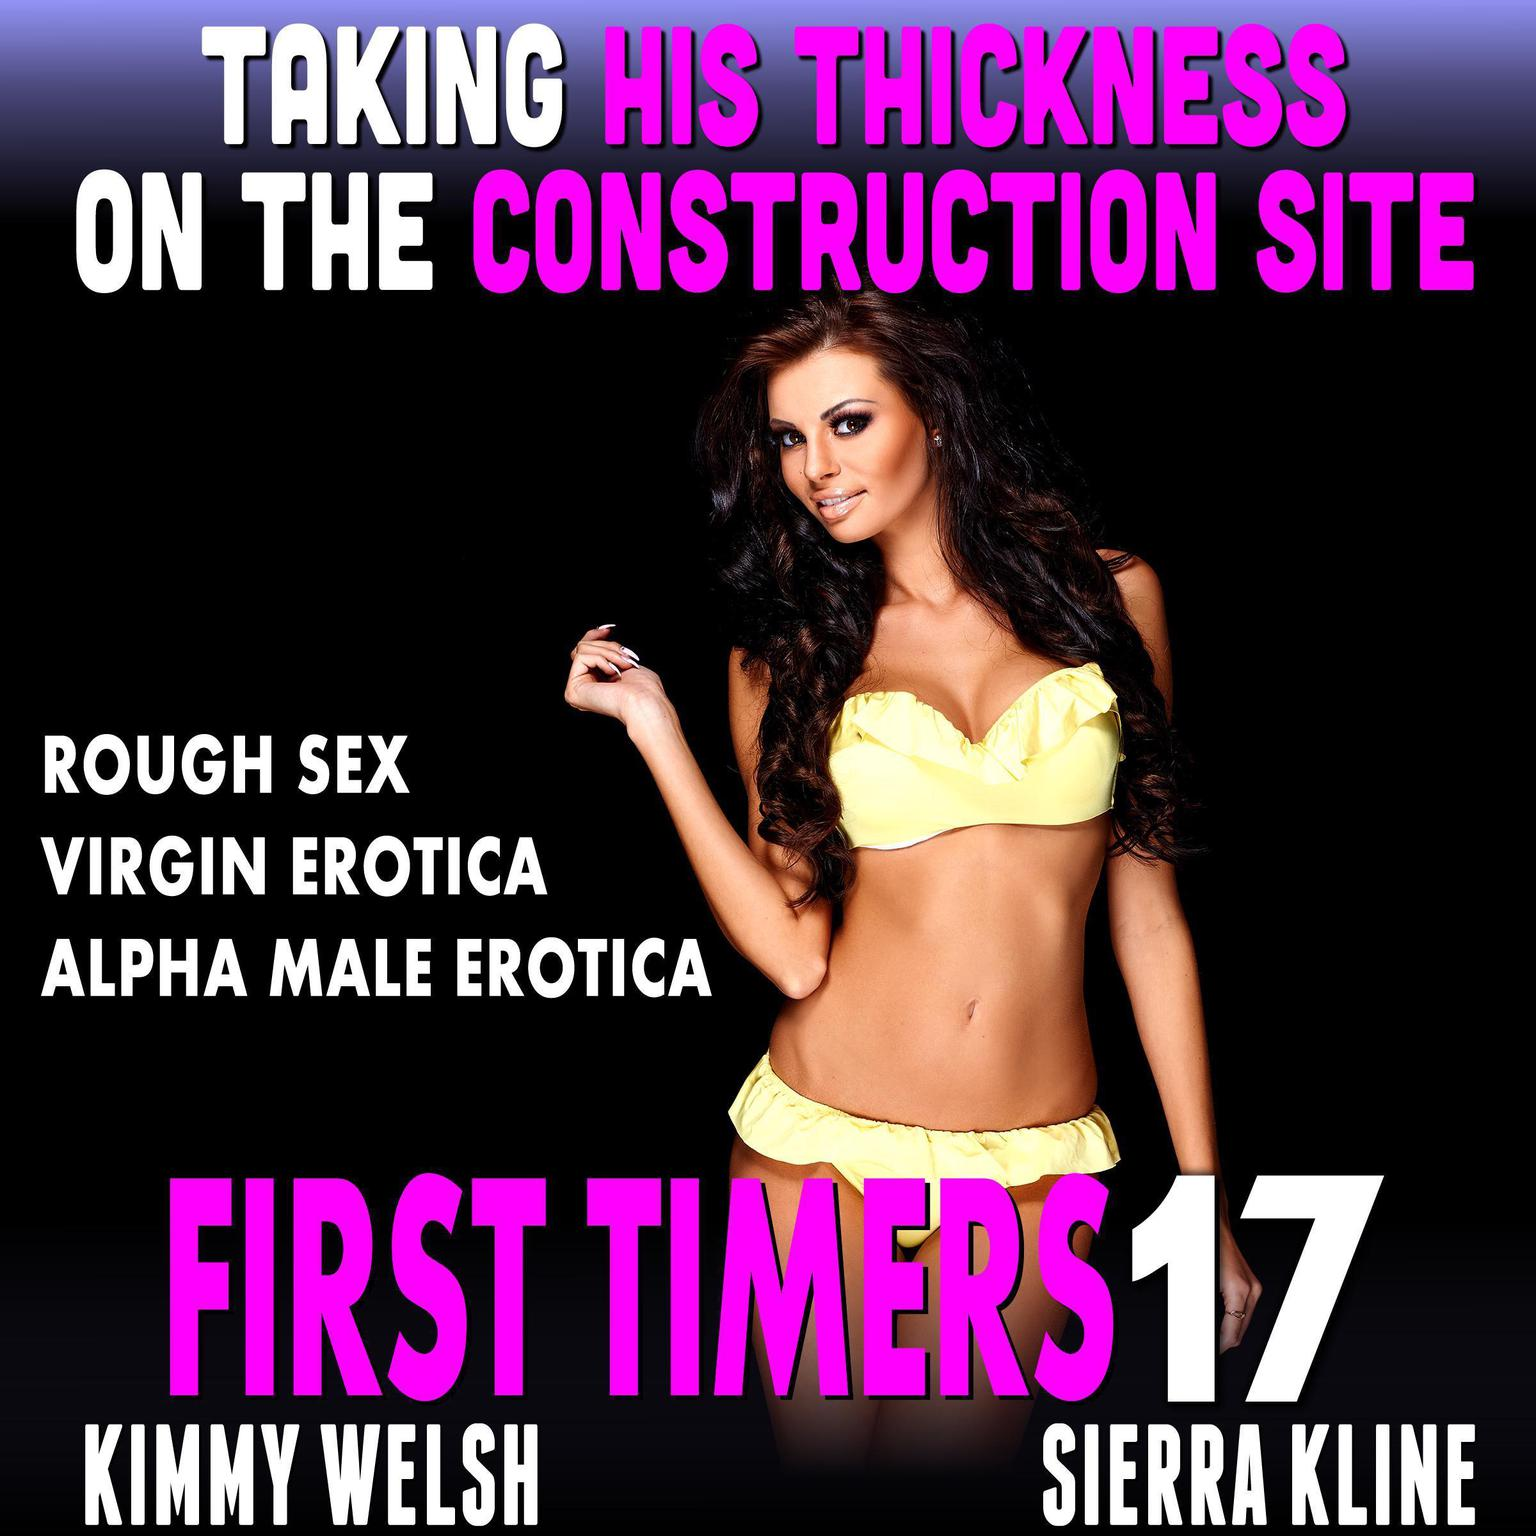 Taking His Thickness on the Construction Site: First Timers 17 (Rough Sex Virgin Erotica Alpha Male Erotica) Audiobook, by Kimmy Welsh